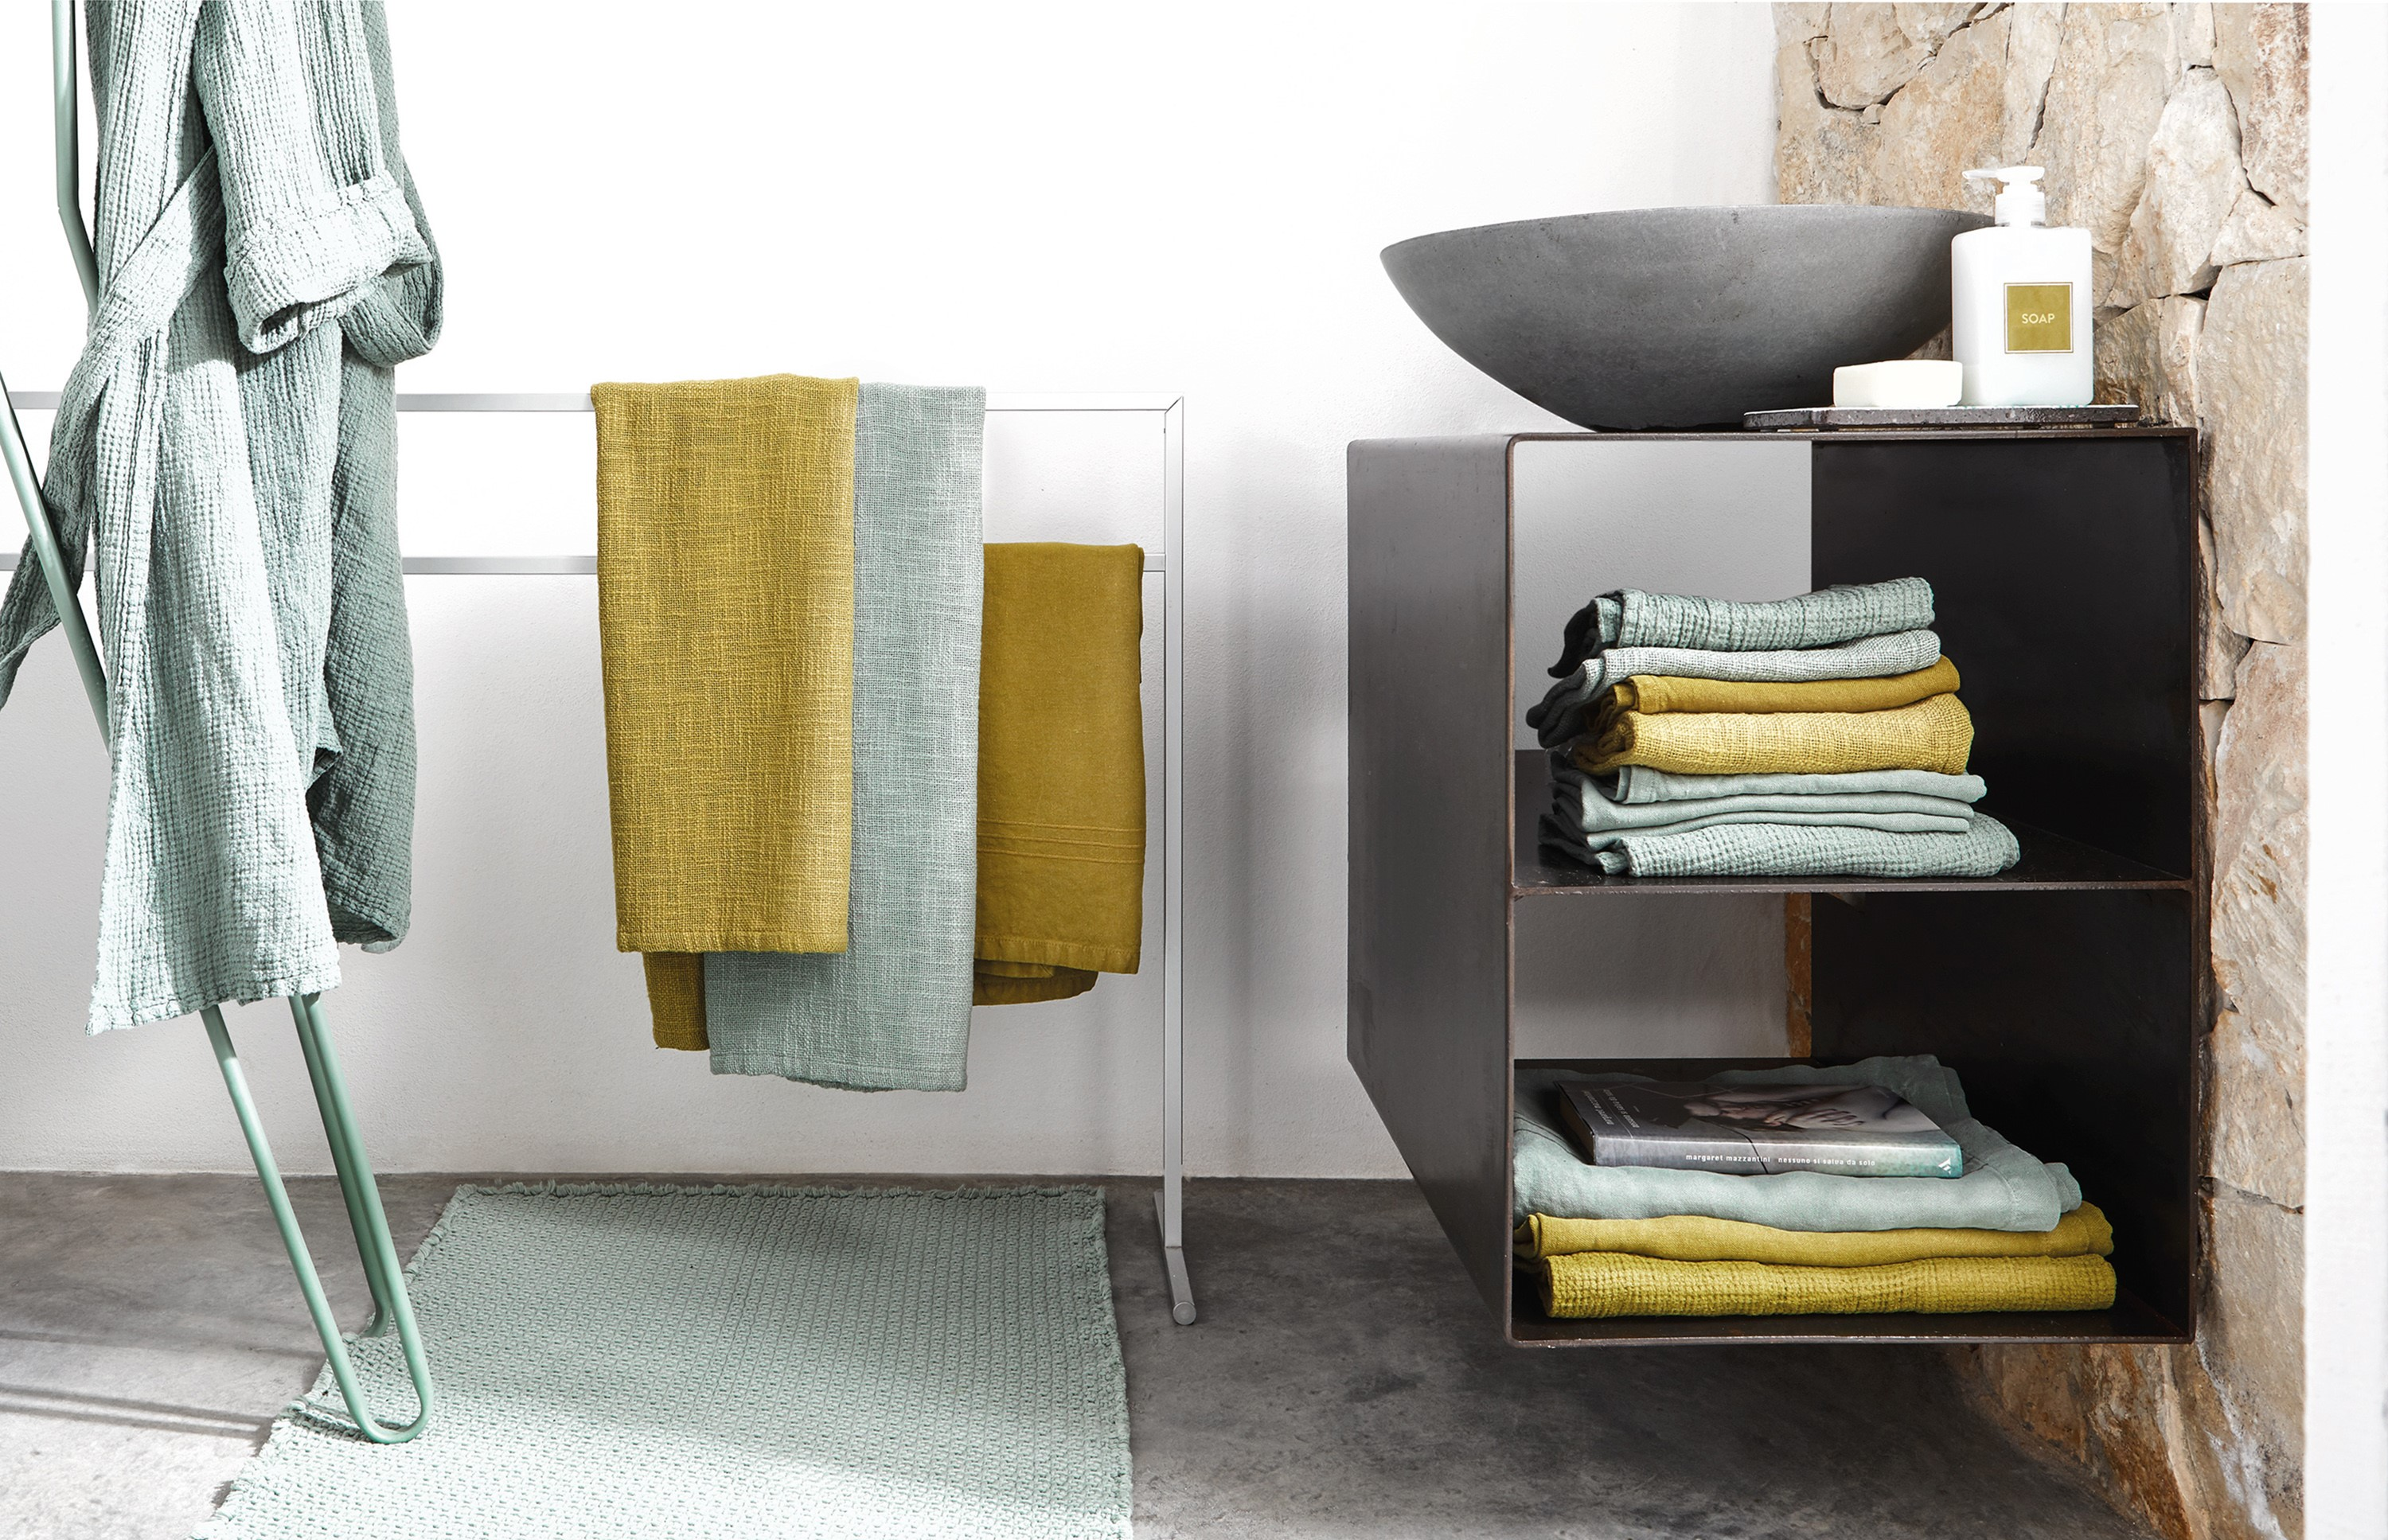 Bathtowels from the Society Limonta Spring/Summer 2018 collection